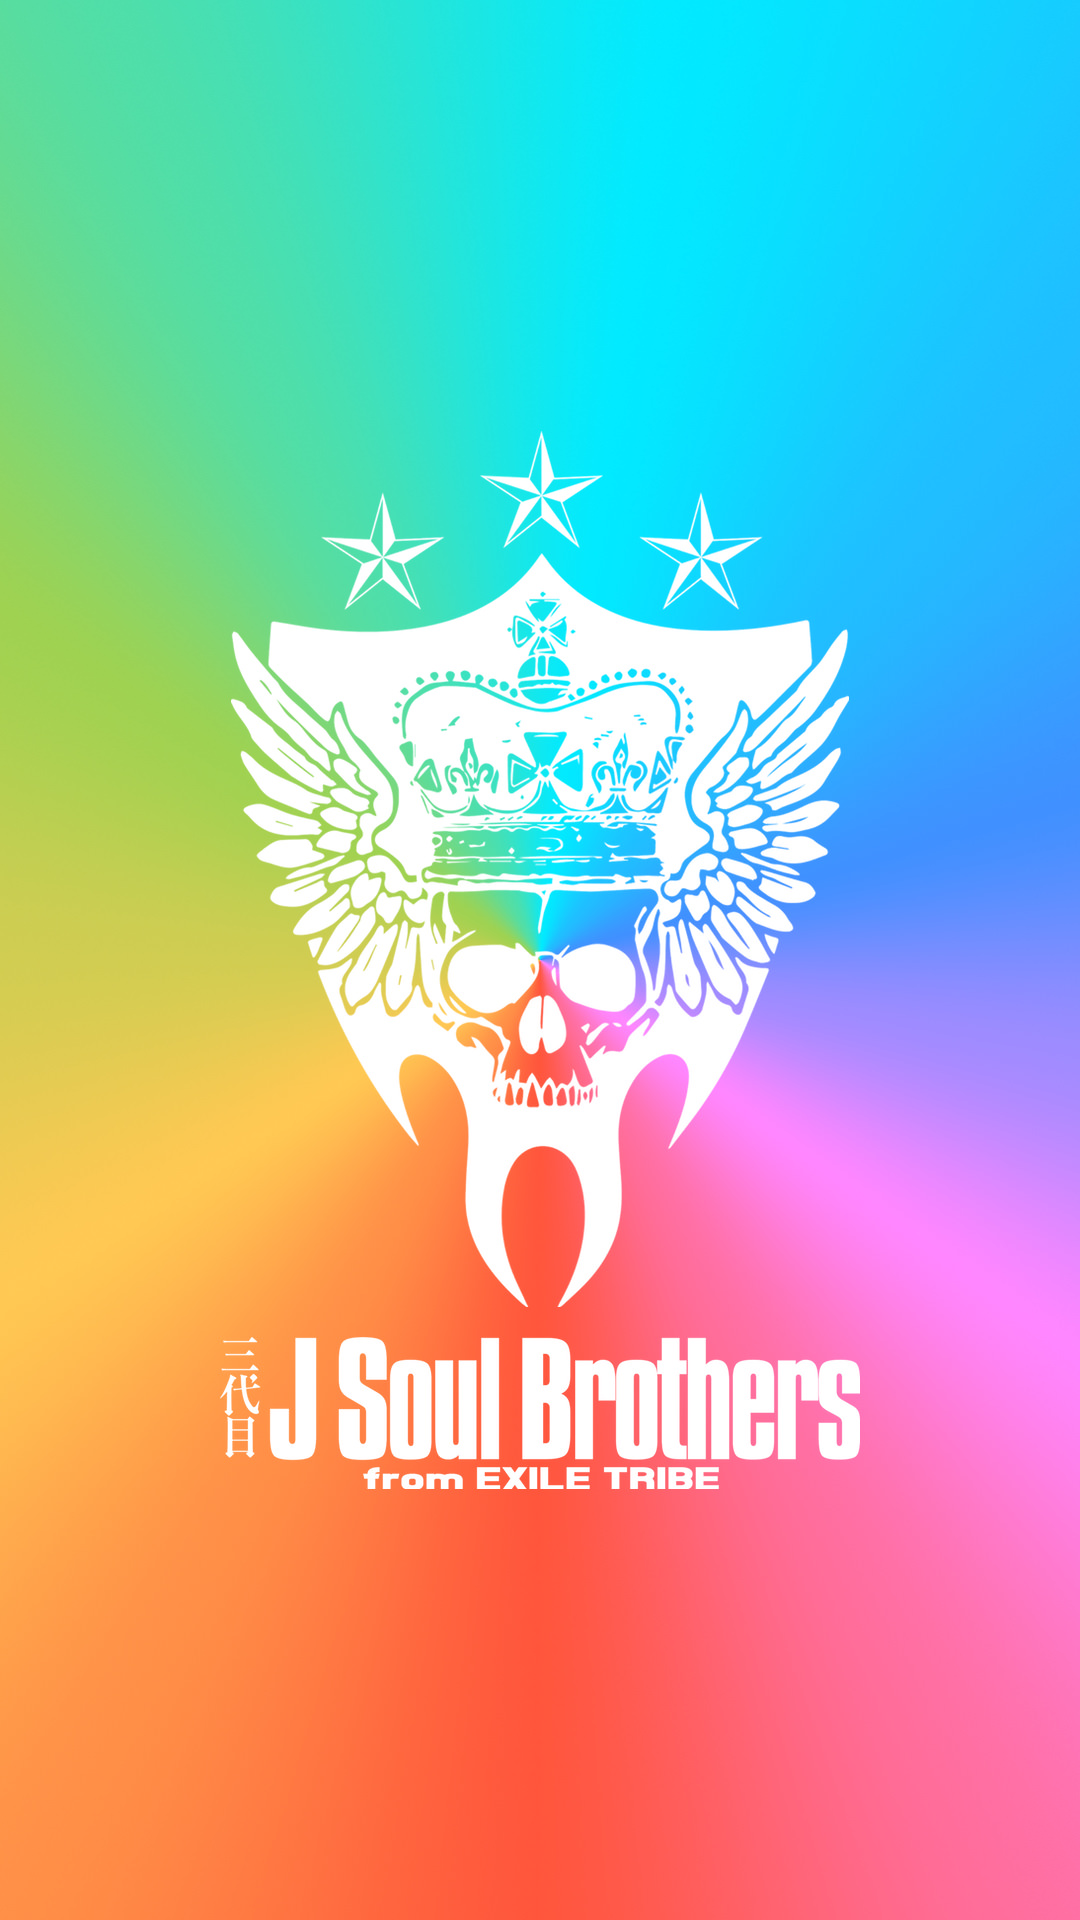 3jsb i10 - 三代目 J SOUL BROTHERSの高画質スマホ壁紙40枚 [iPhone&Androidに対応]